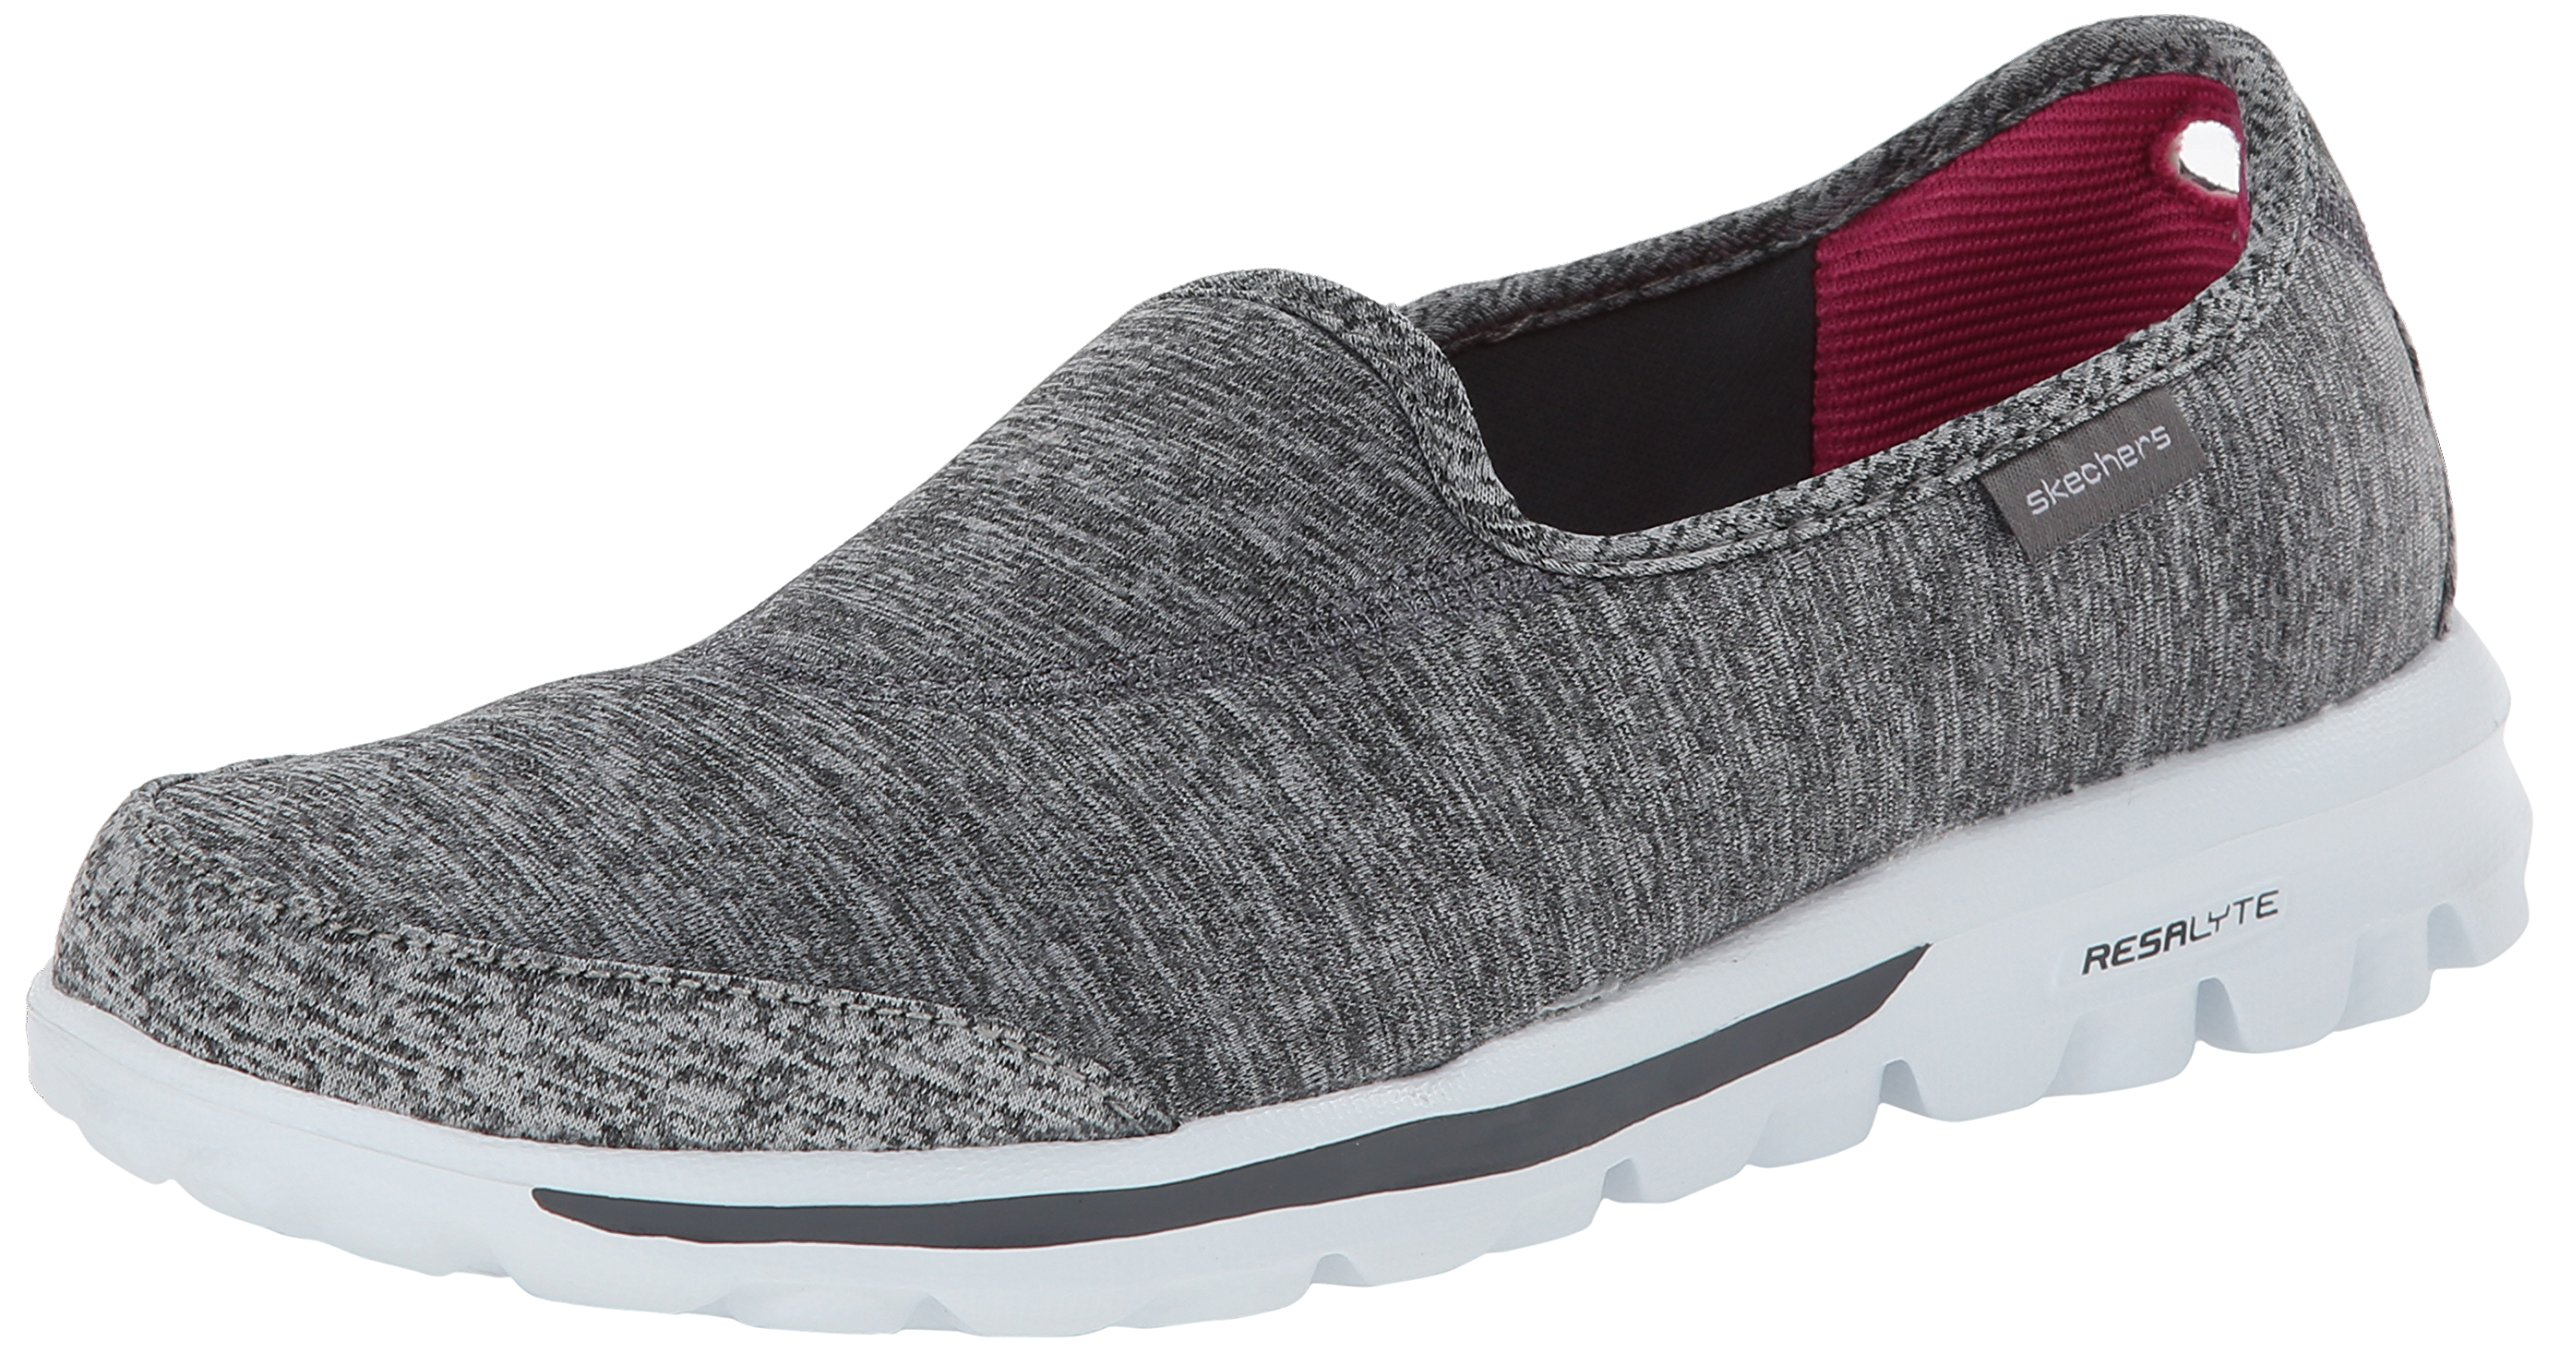 Skechers Performance Women's Go Walk Lead Memory Foam Slip-On Walking Shoe,Gray,9.5 M US